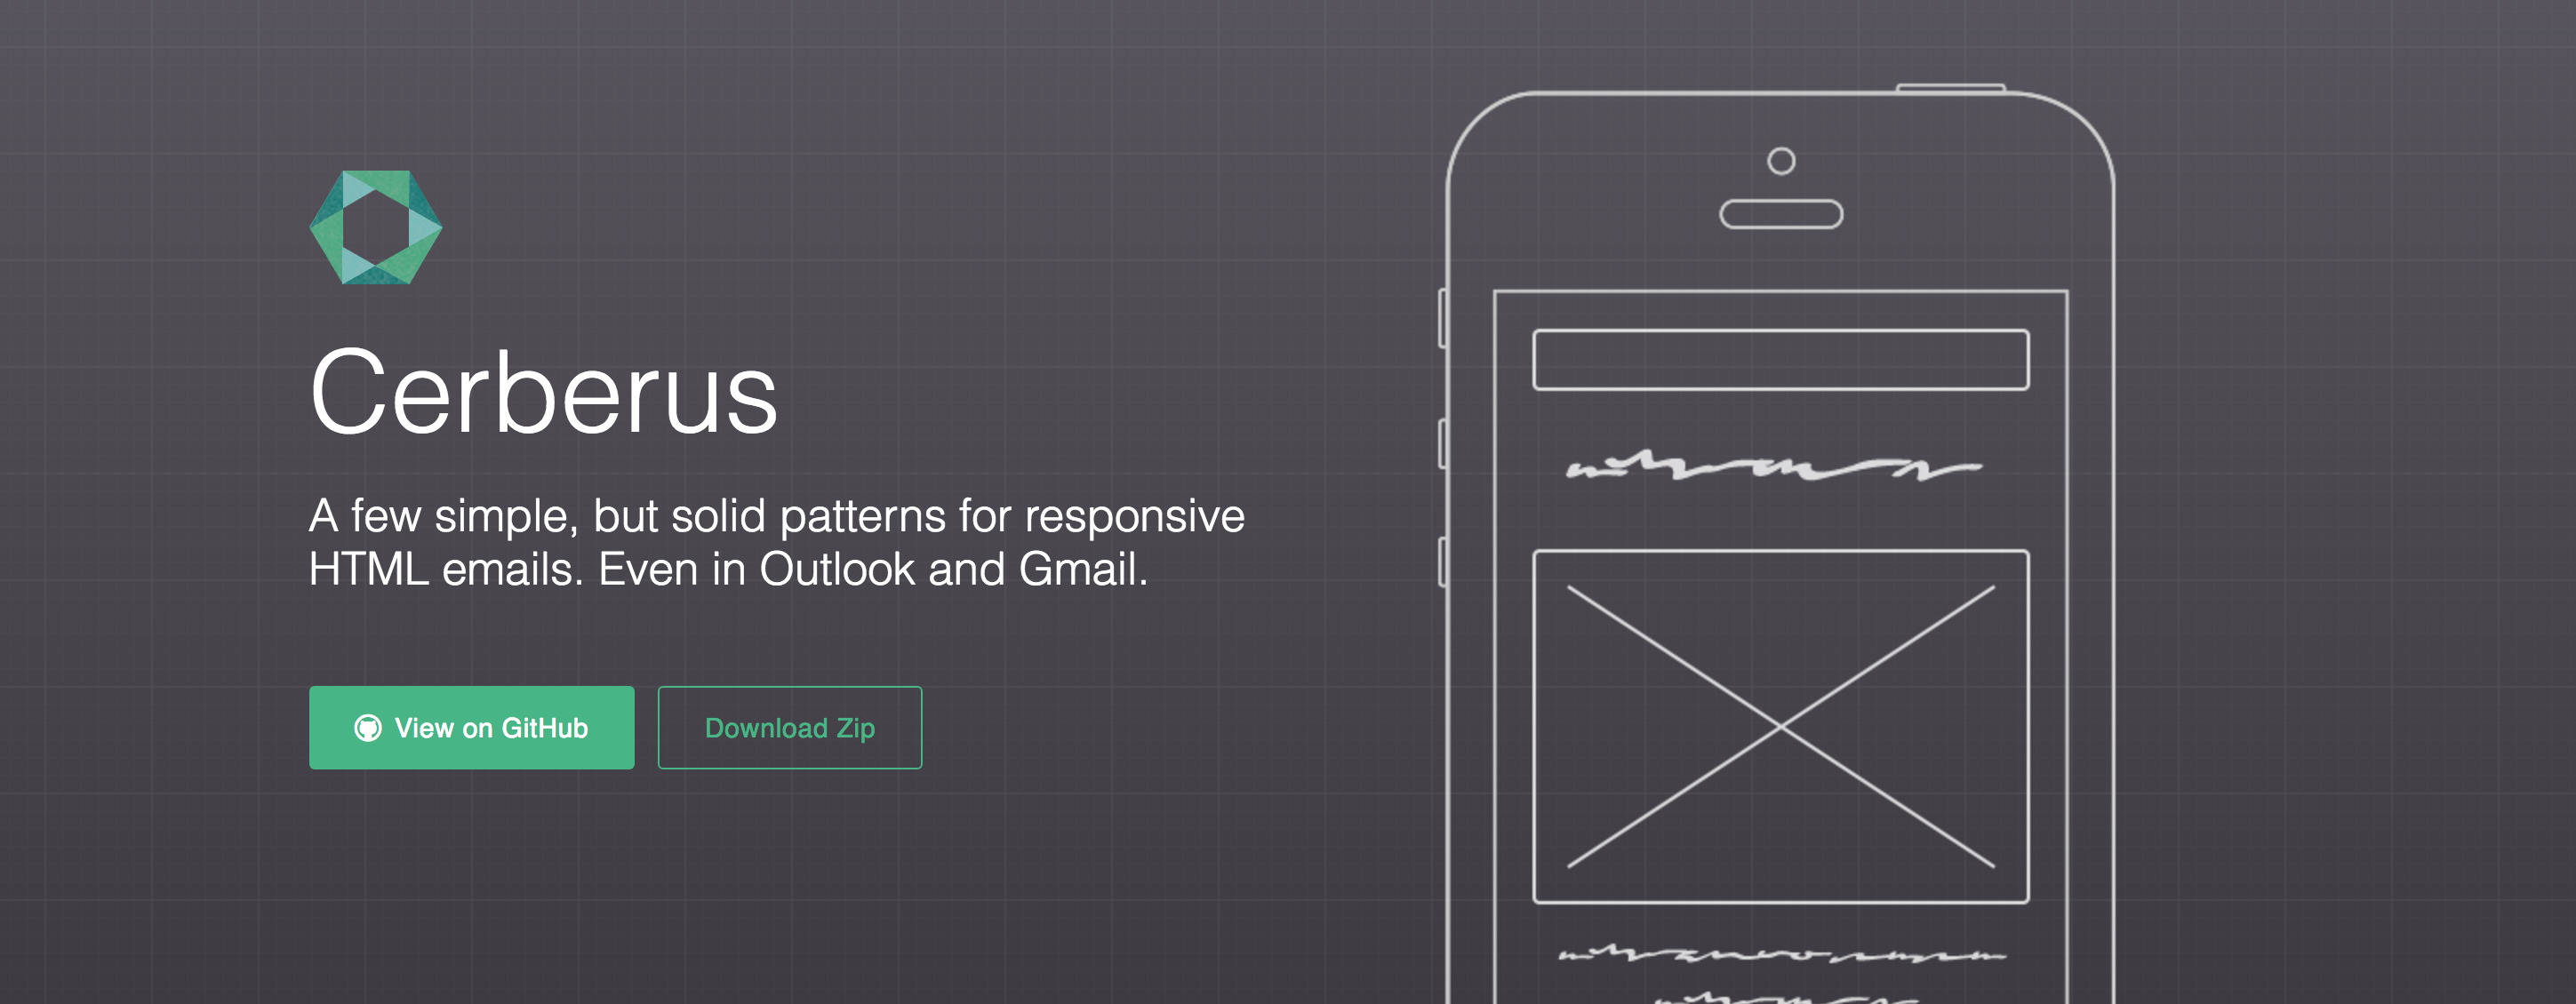 Cerberus - A few simple, but solid patterns for responsive HTML ...